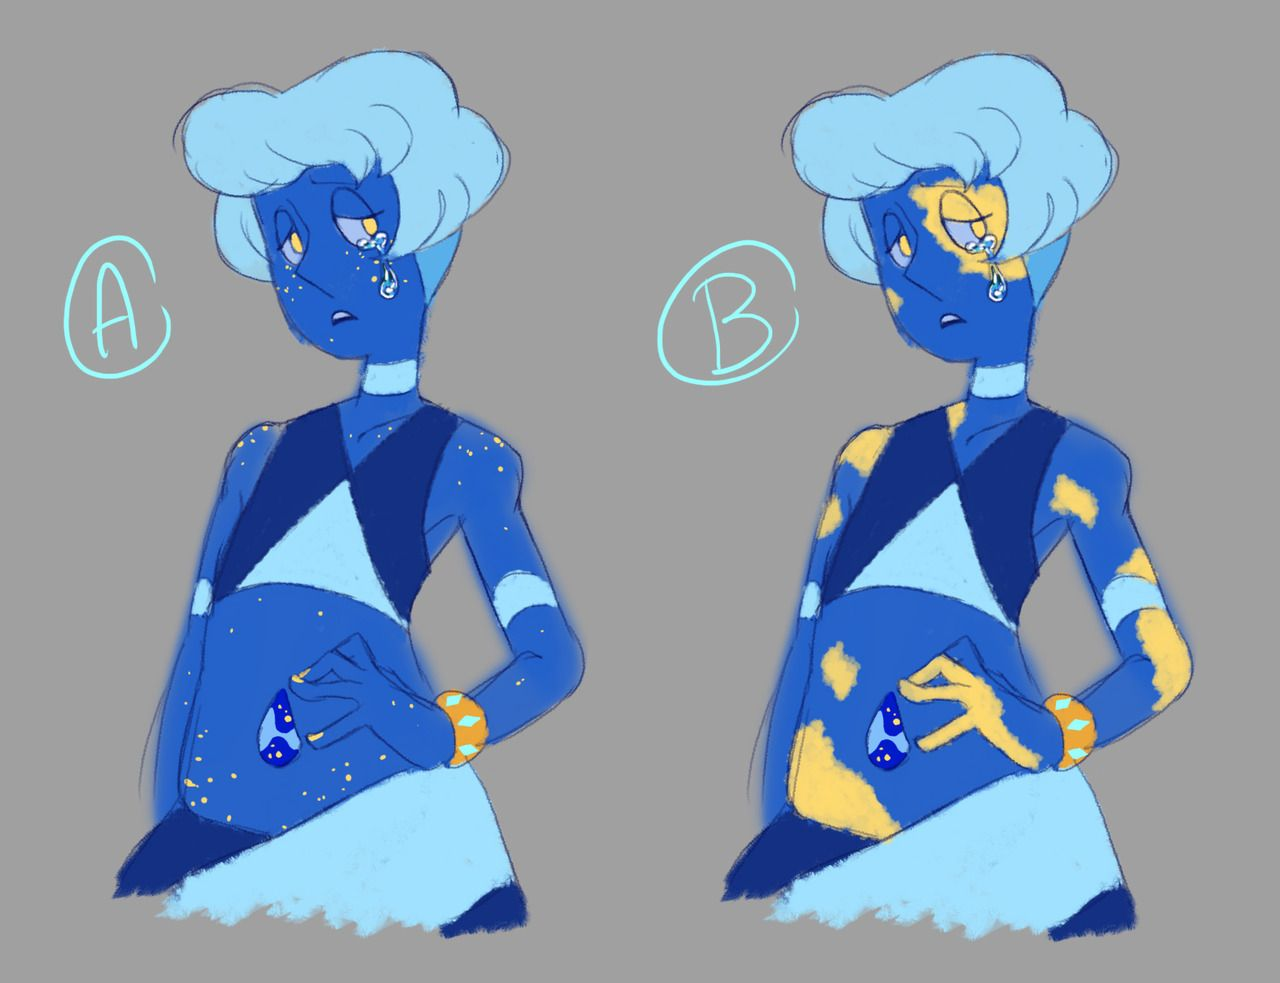 Gold Freckles Or Scars Morenapis Much Like Peridot Is An Holder Fuse Box 87 Dakika Era 2 Lapis She Has Come Out Discoloured With Light Blue And Patches On Her